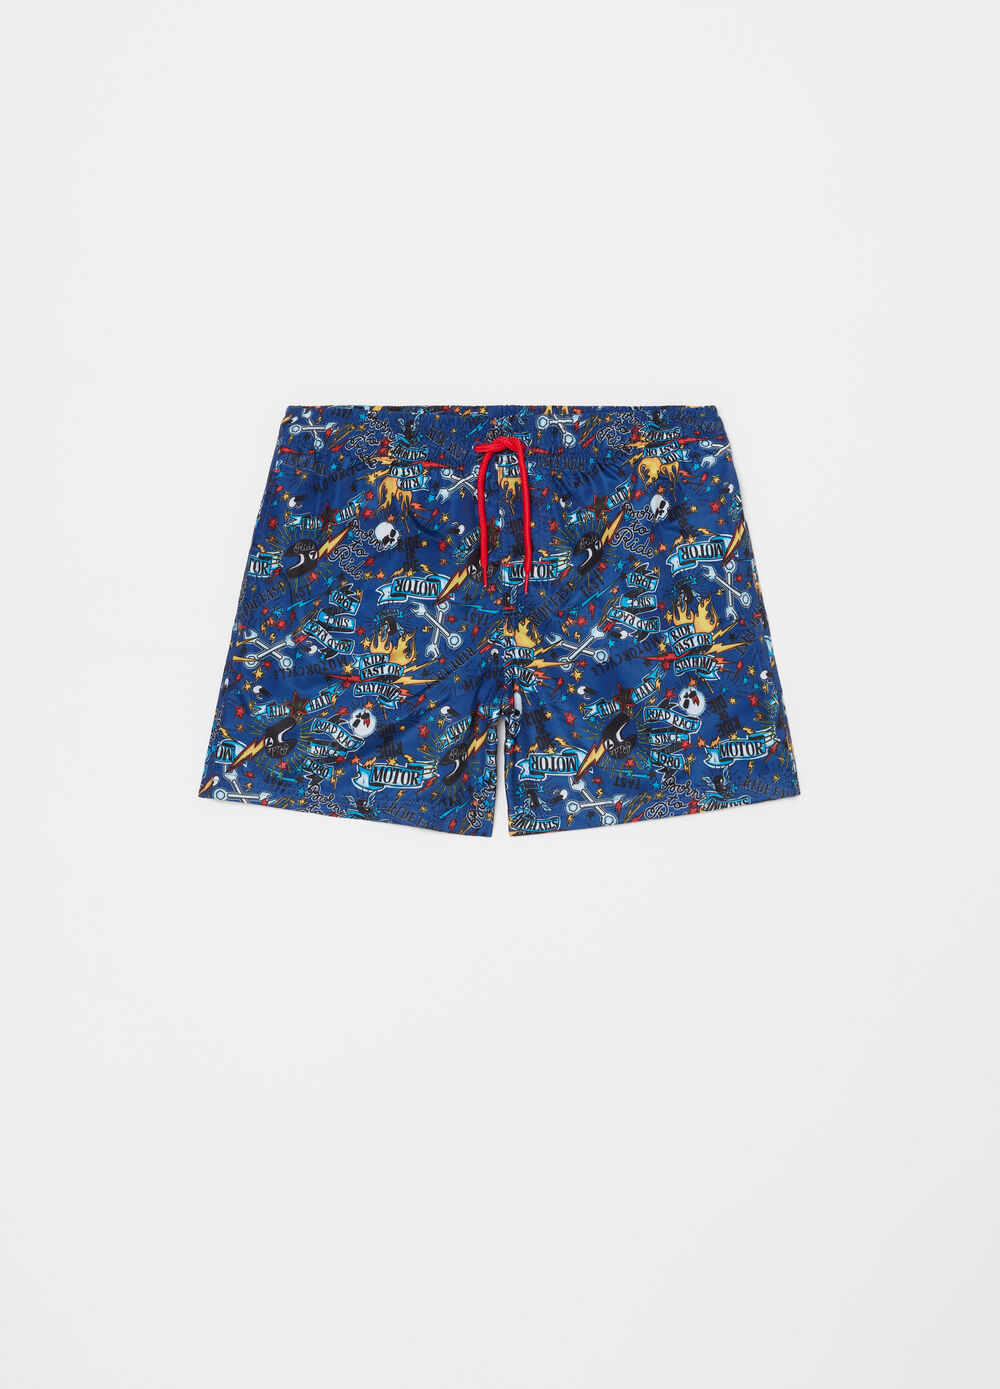 Swim boxer shorts with pocket, pattern and drawstring